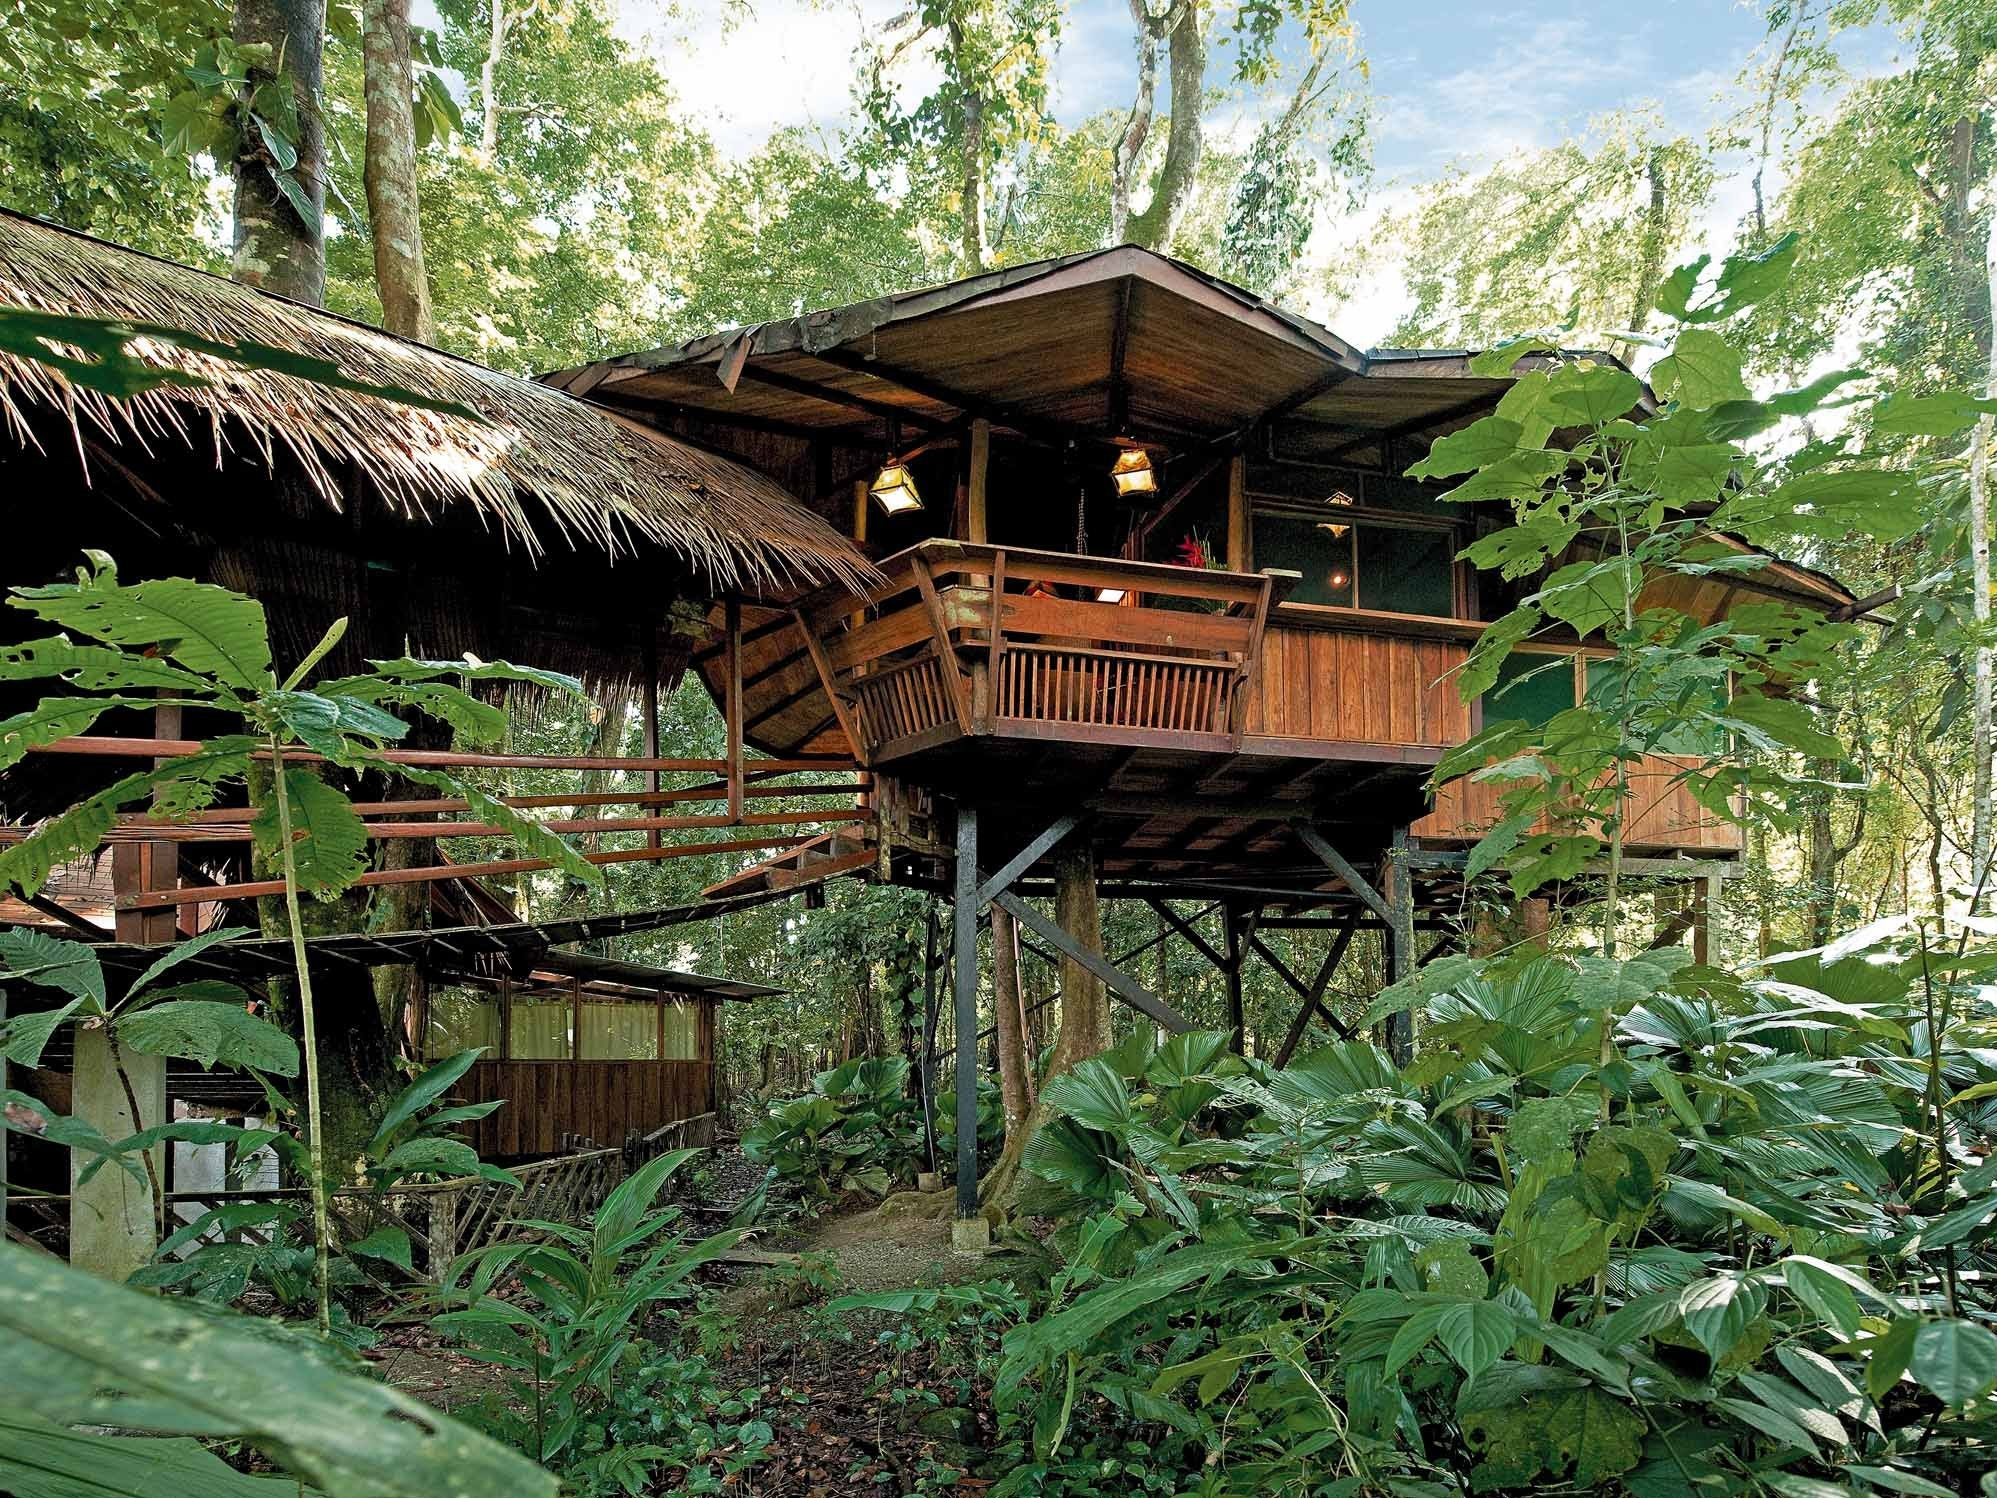 The Costa Rica Tree House Lodge is built within the boundaries of the Gandoca-Manzanillo Wildlife Refuge, where tours of the rainforest can be arranged.